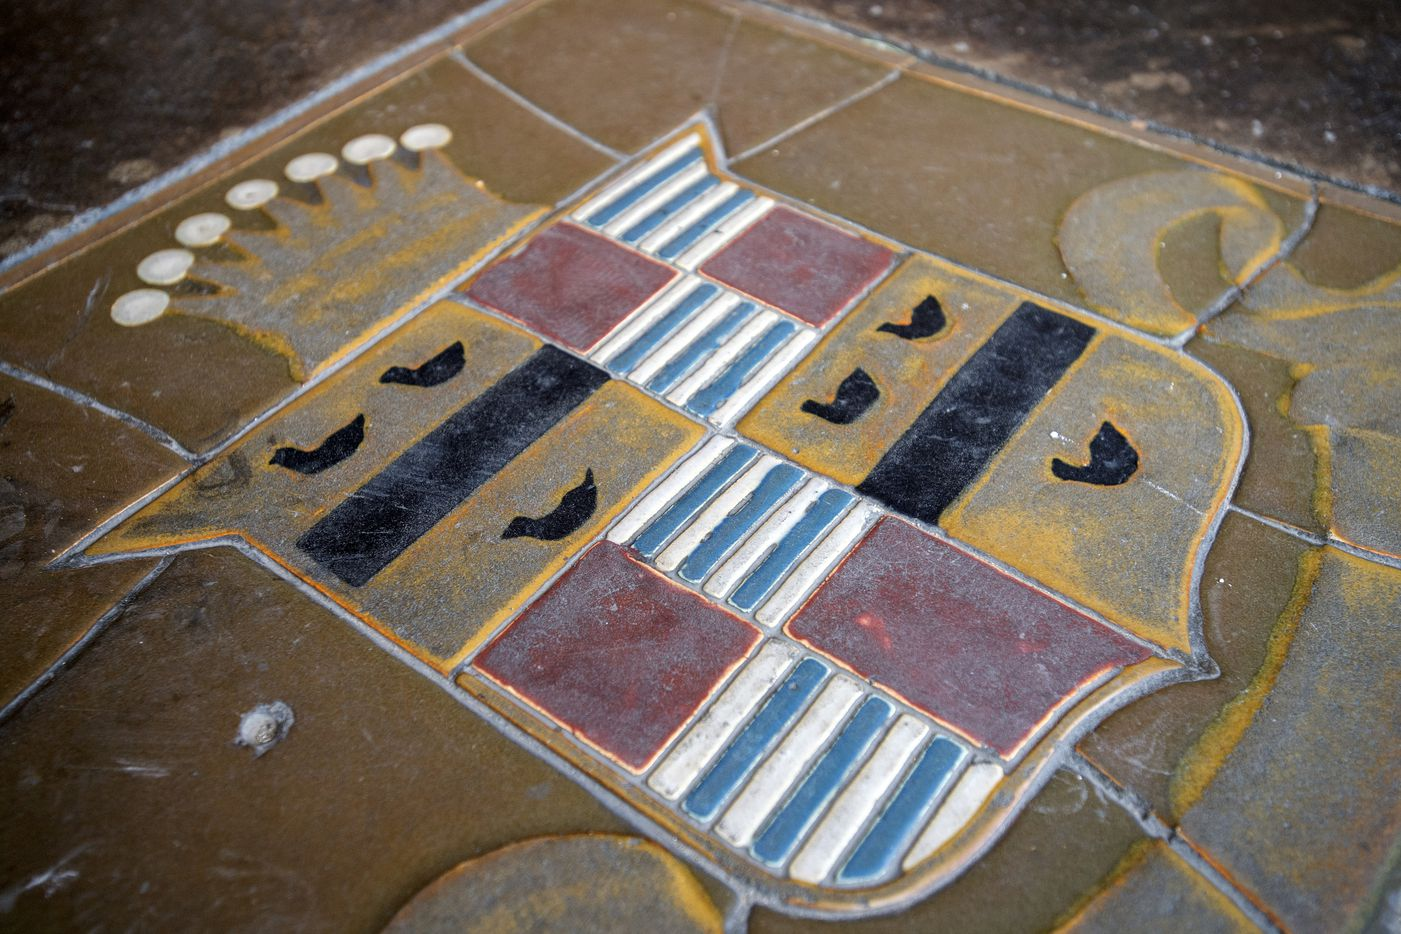 The Cadillac emblem is etched into the floor of the former showroom on Commerce Street.